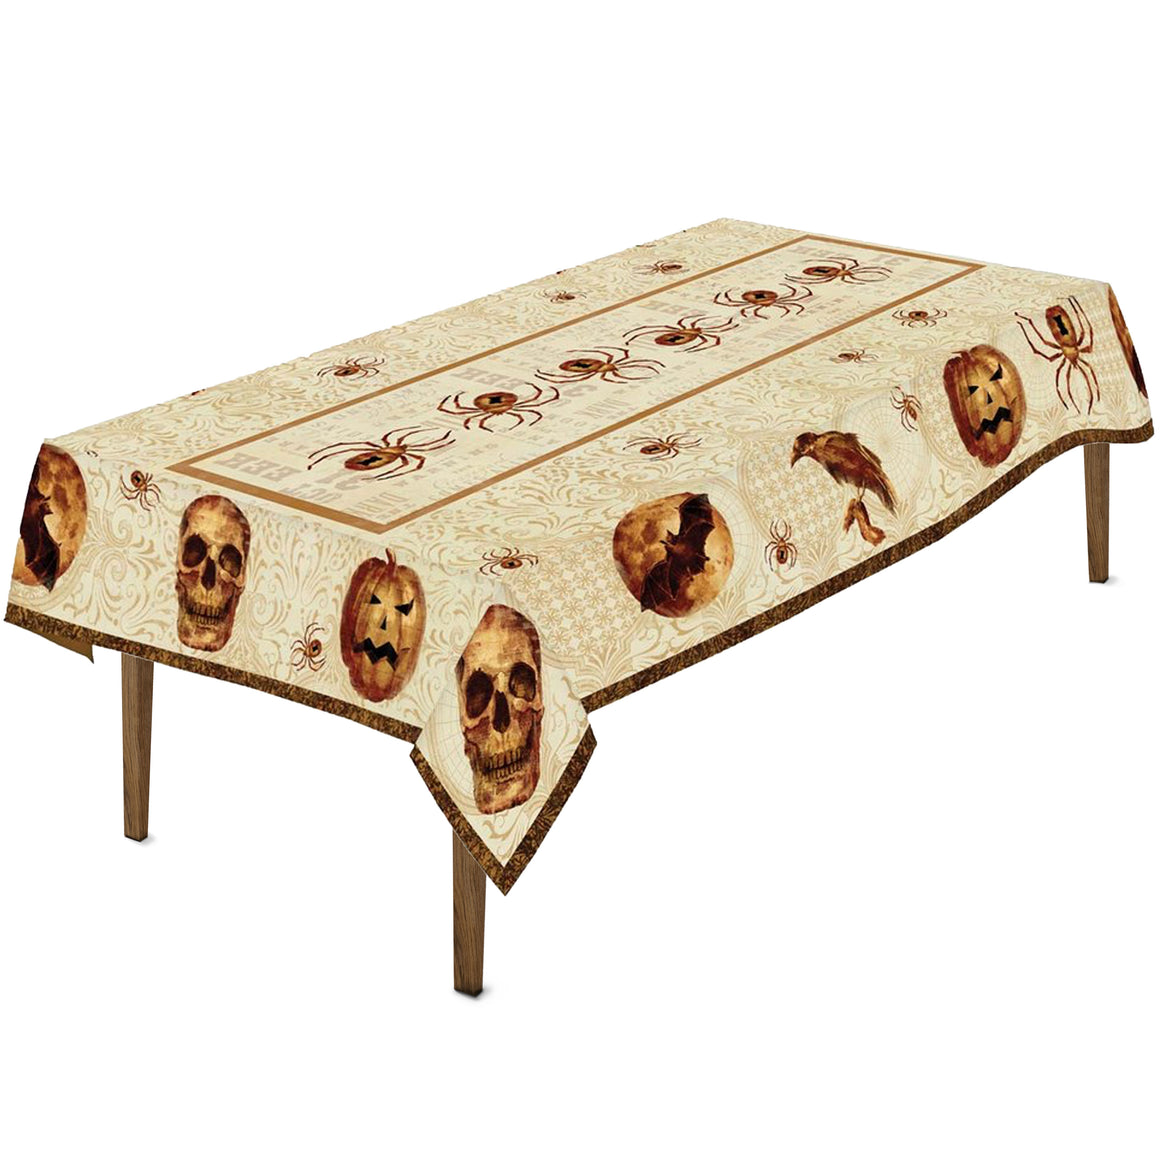 Spooky Halloween Tablecloth is crawling with spiders, crows, skulls, and Jack-o'-lanterns set in a simple orange color palette.